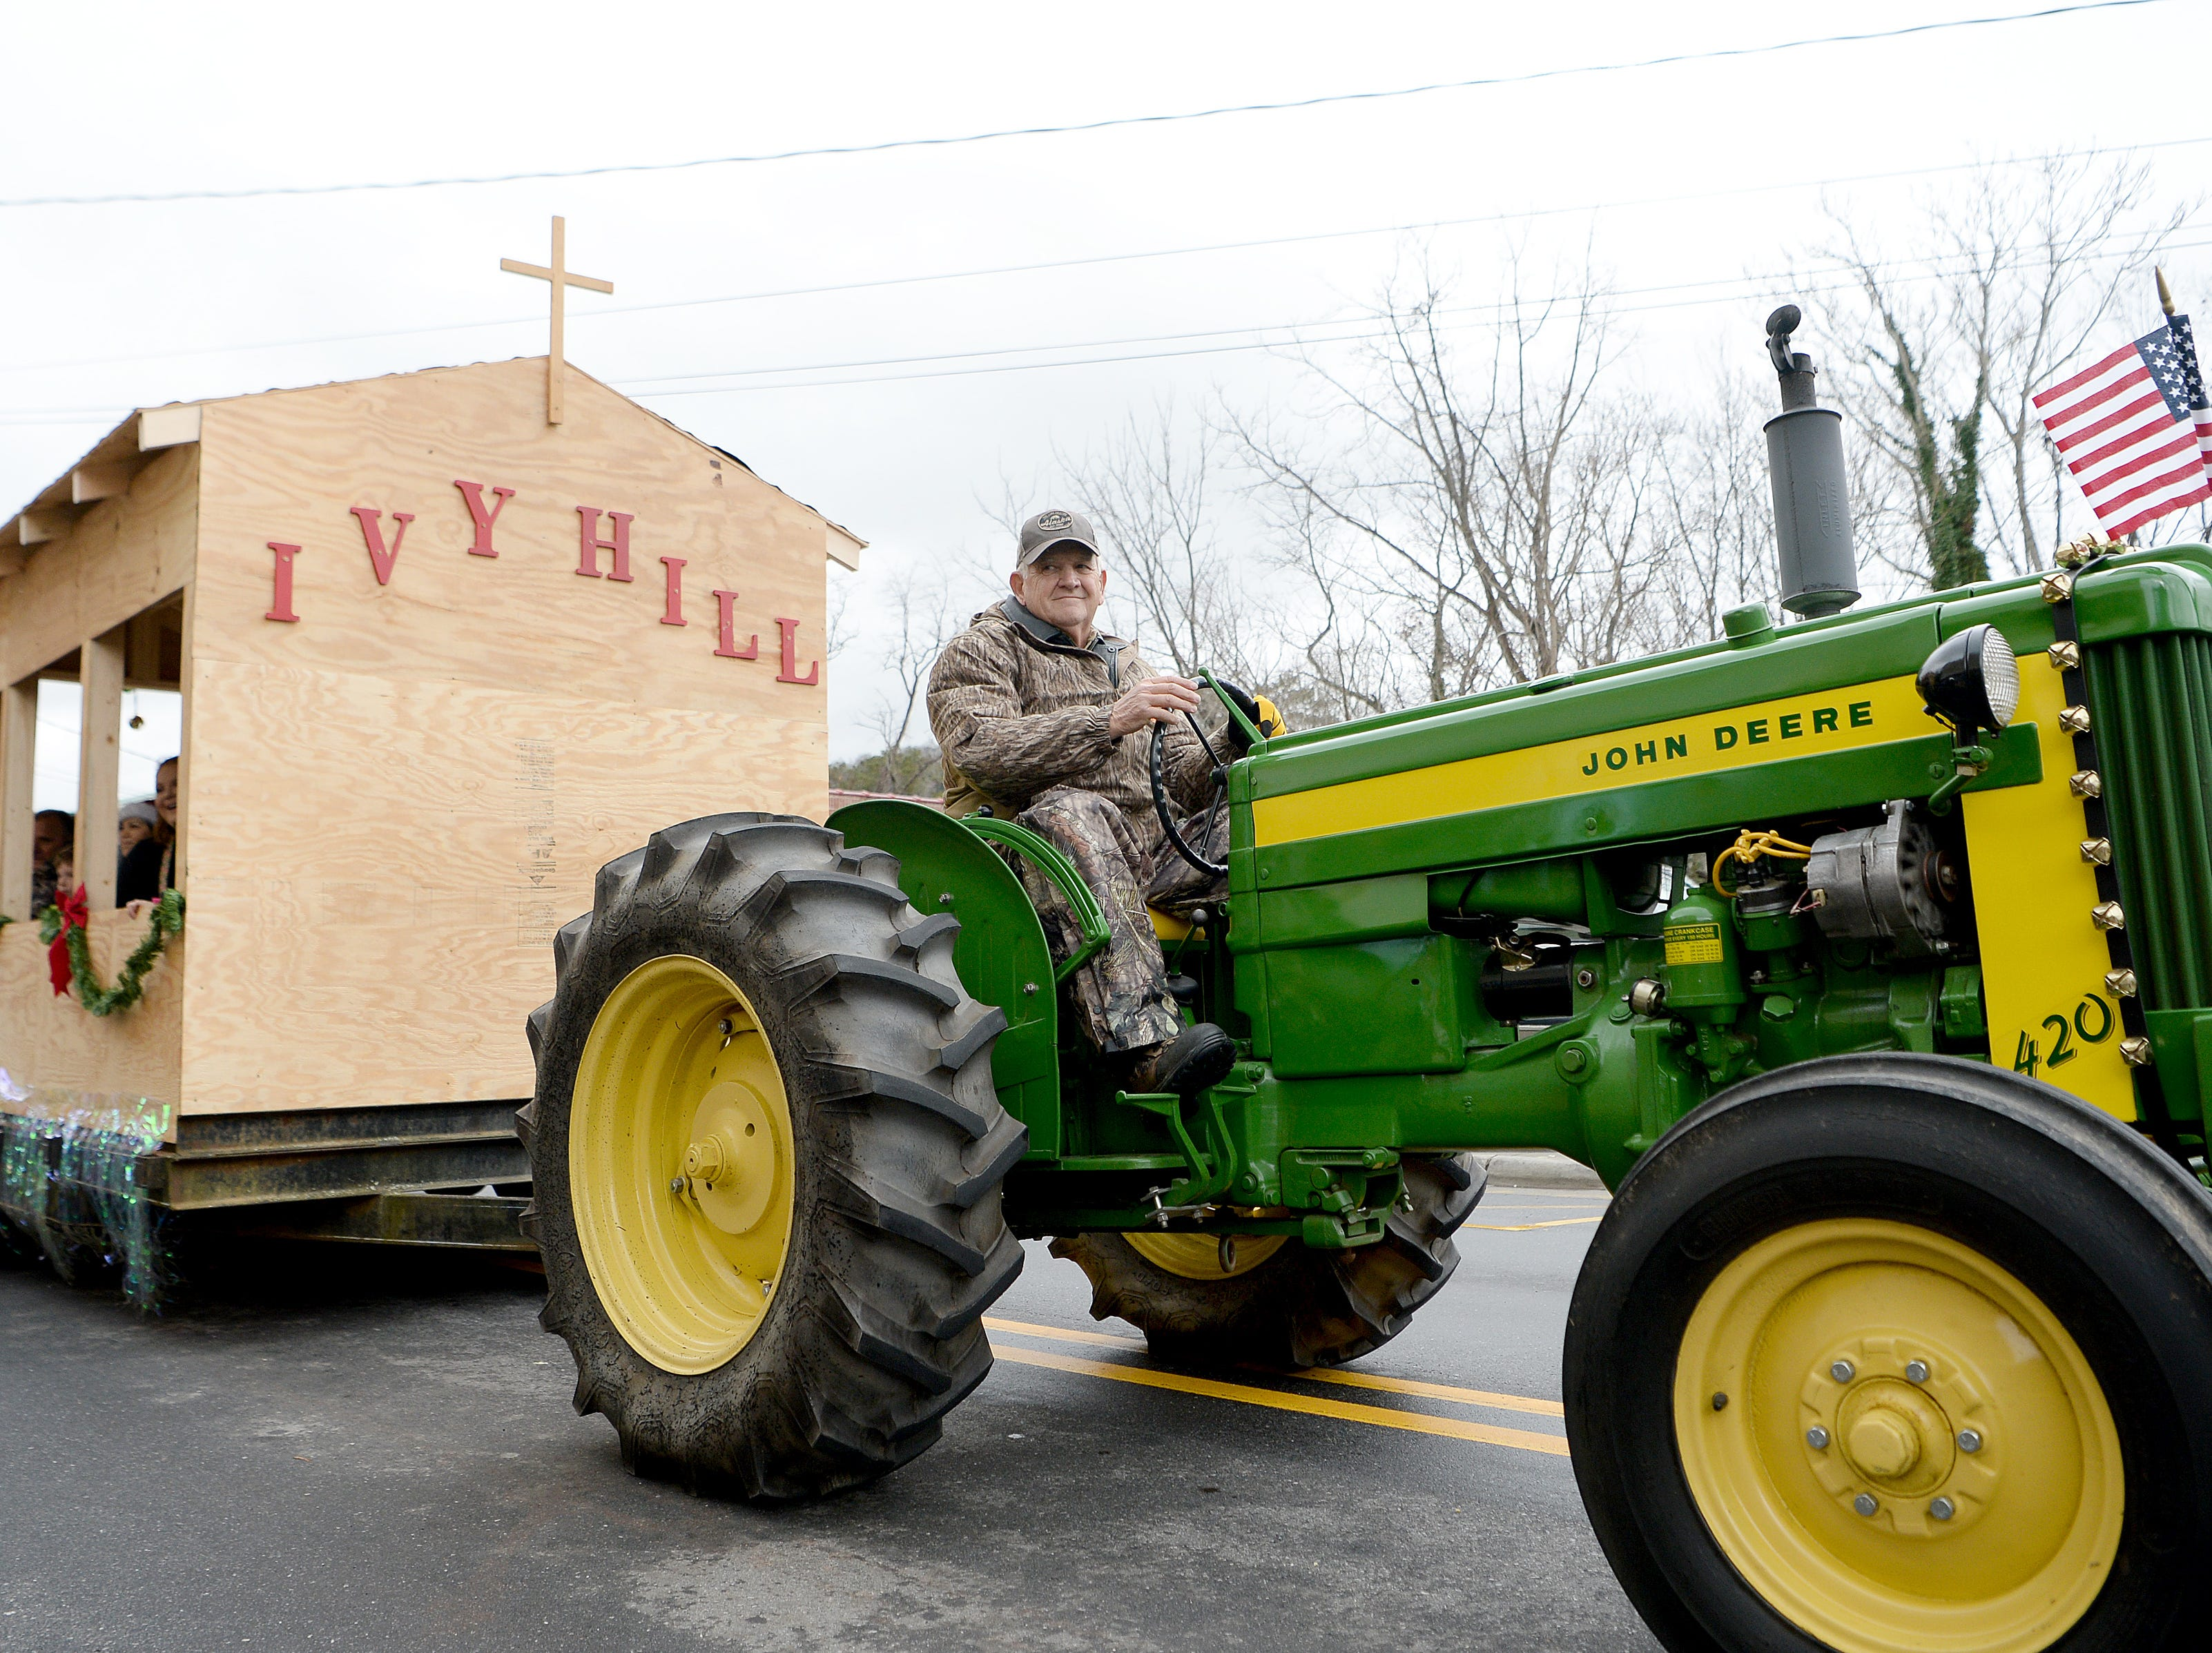 The Ivy Hill Baptist Church float is pulled down Main Street by tractor in the Weaverville Christmas Parade on Dec. 1, 2018.